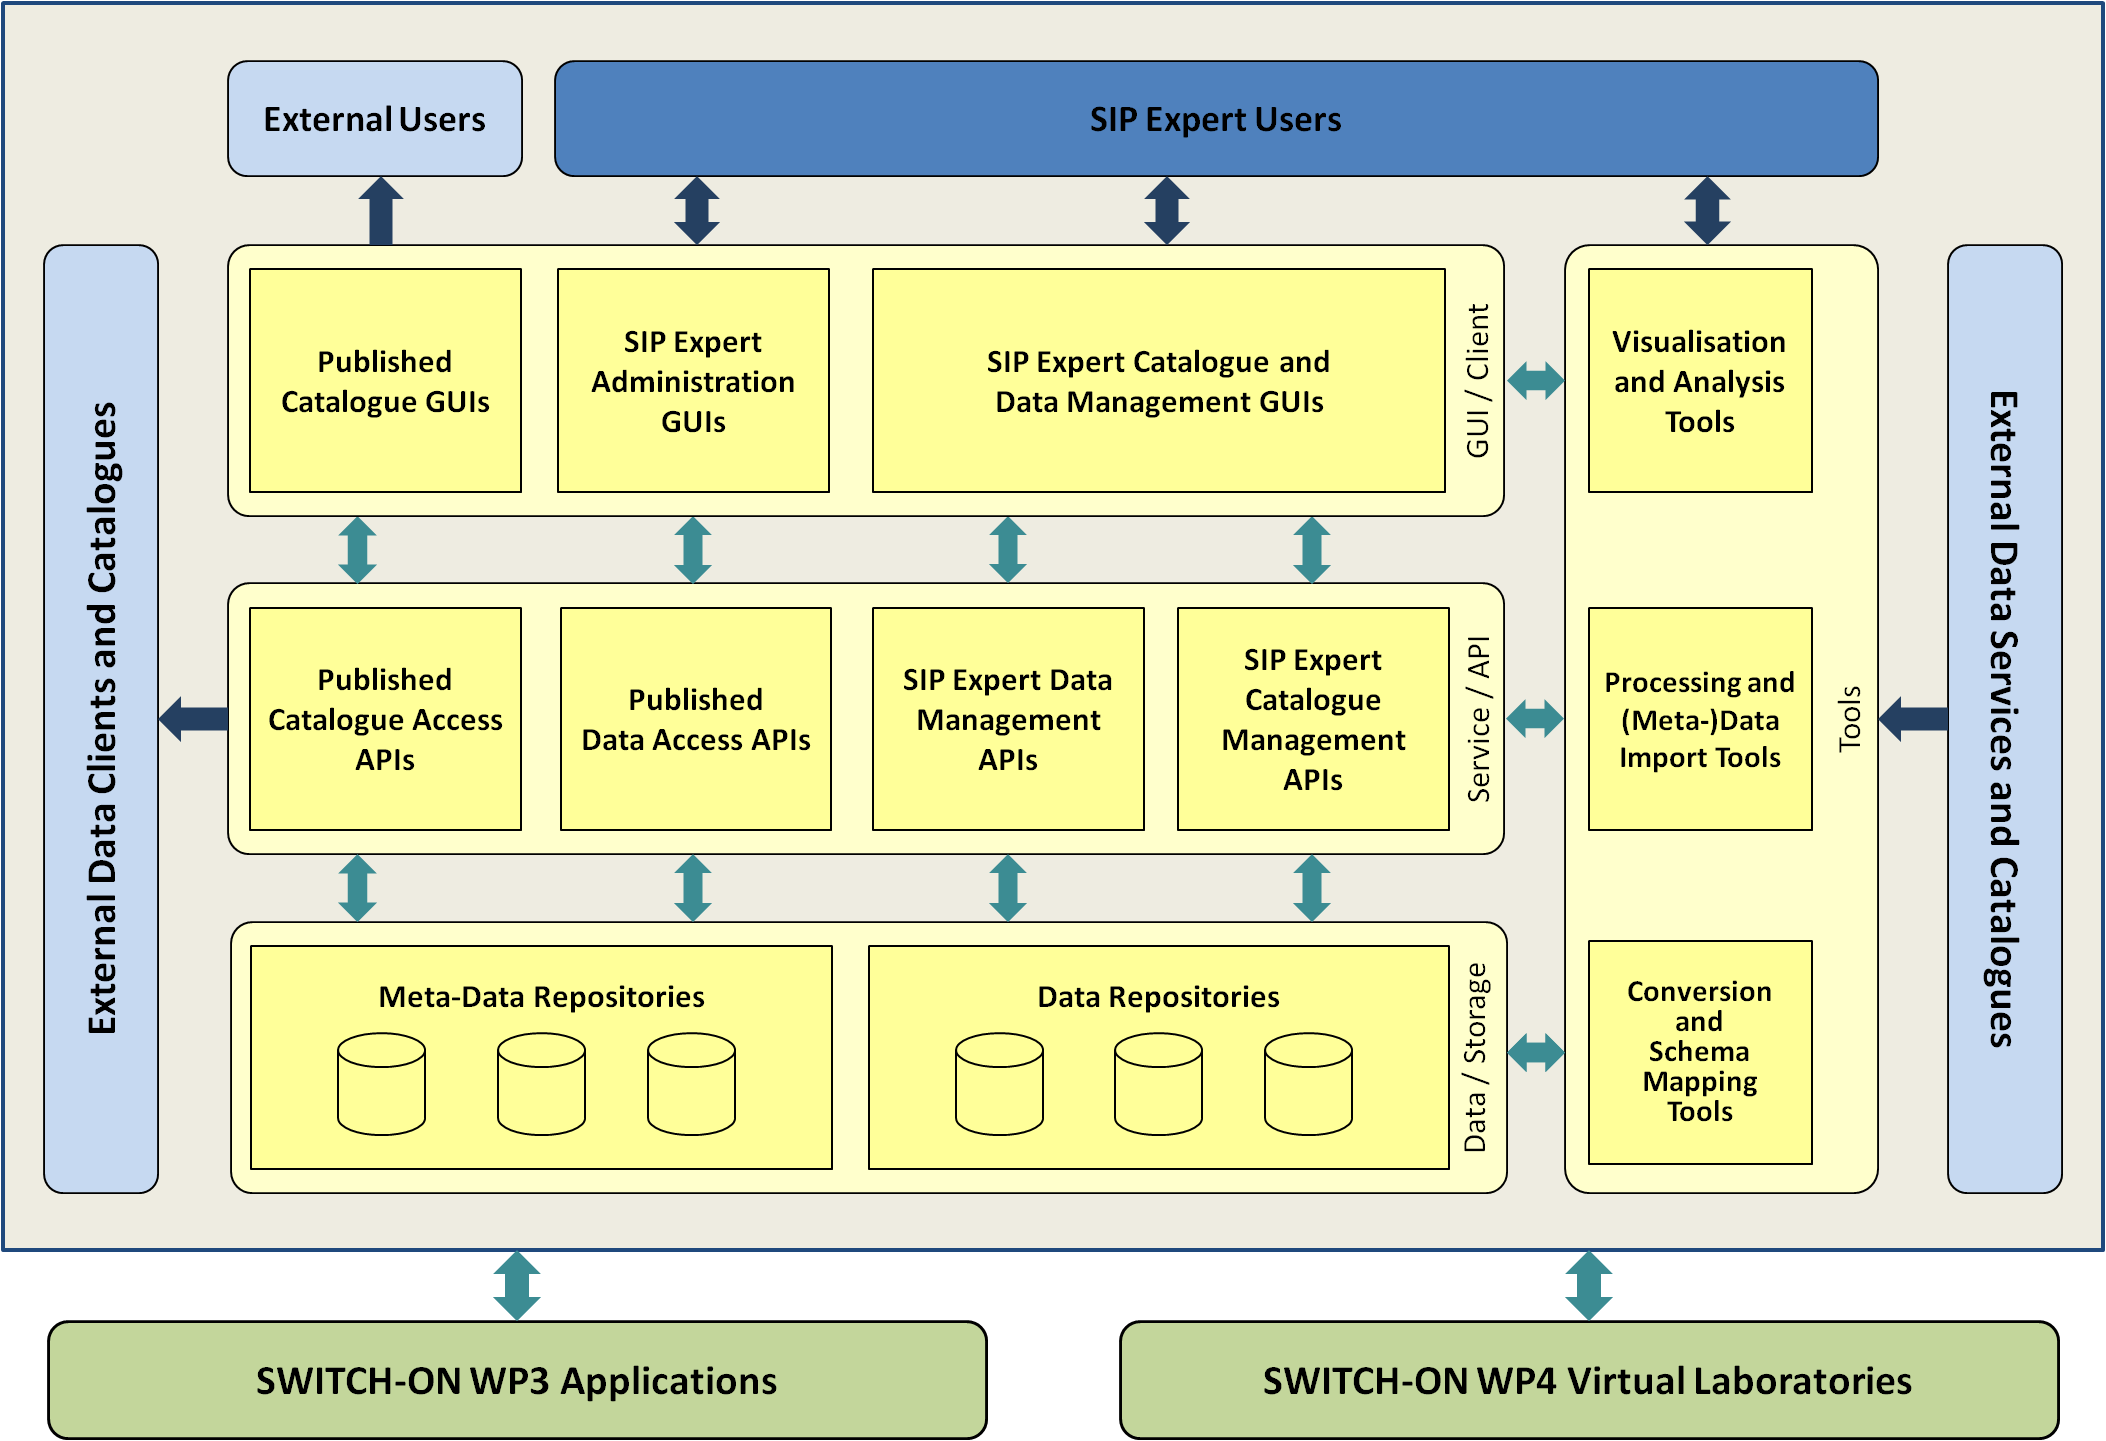 Architecture of the Spatial Information Platform